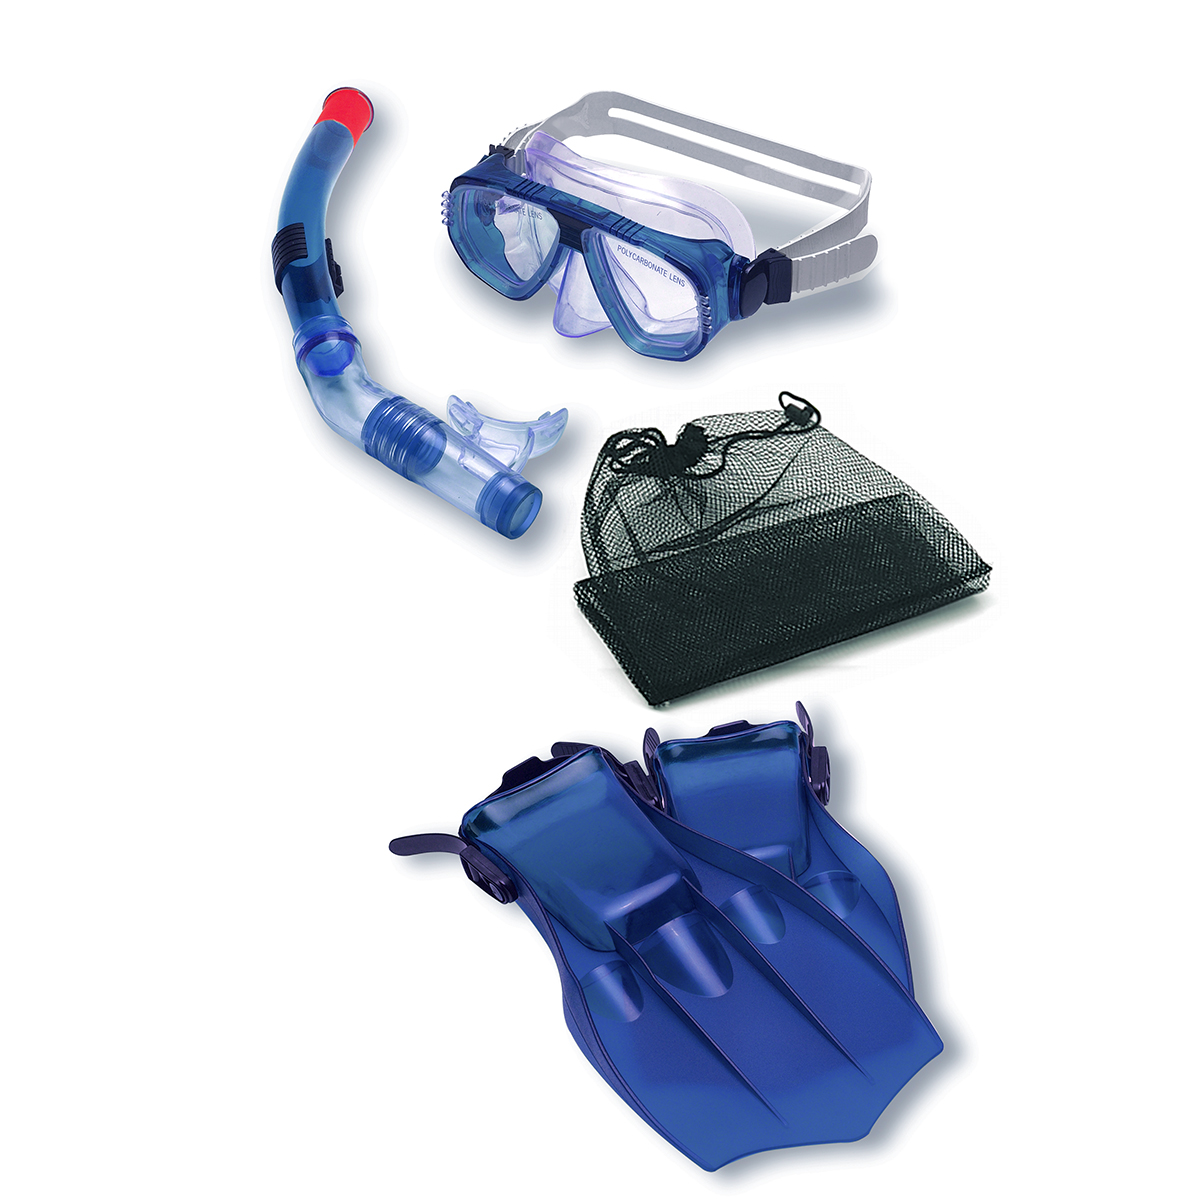 Water Sports Recreational Blue Mask, Snorkel and Fins Swimming Pool and Water Snorkeling Set by Swim Central